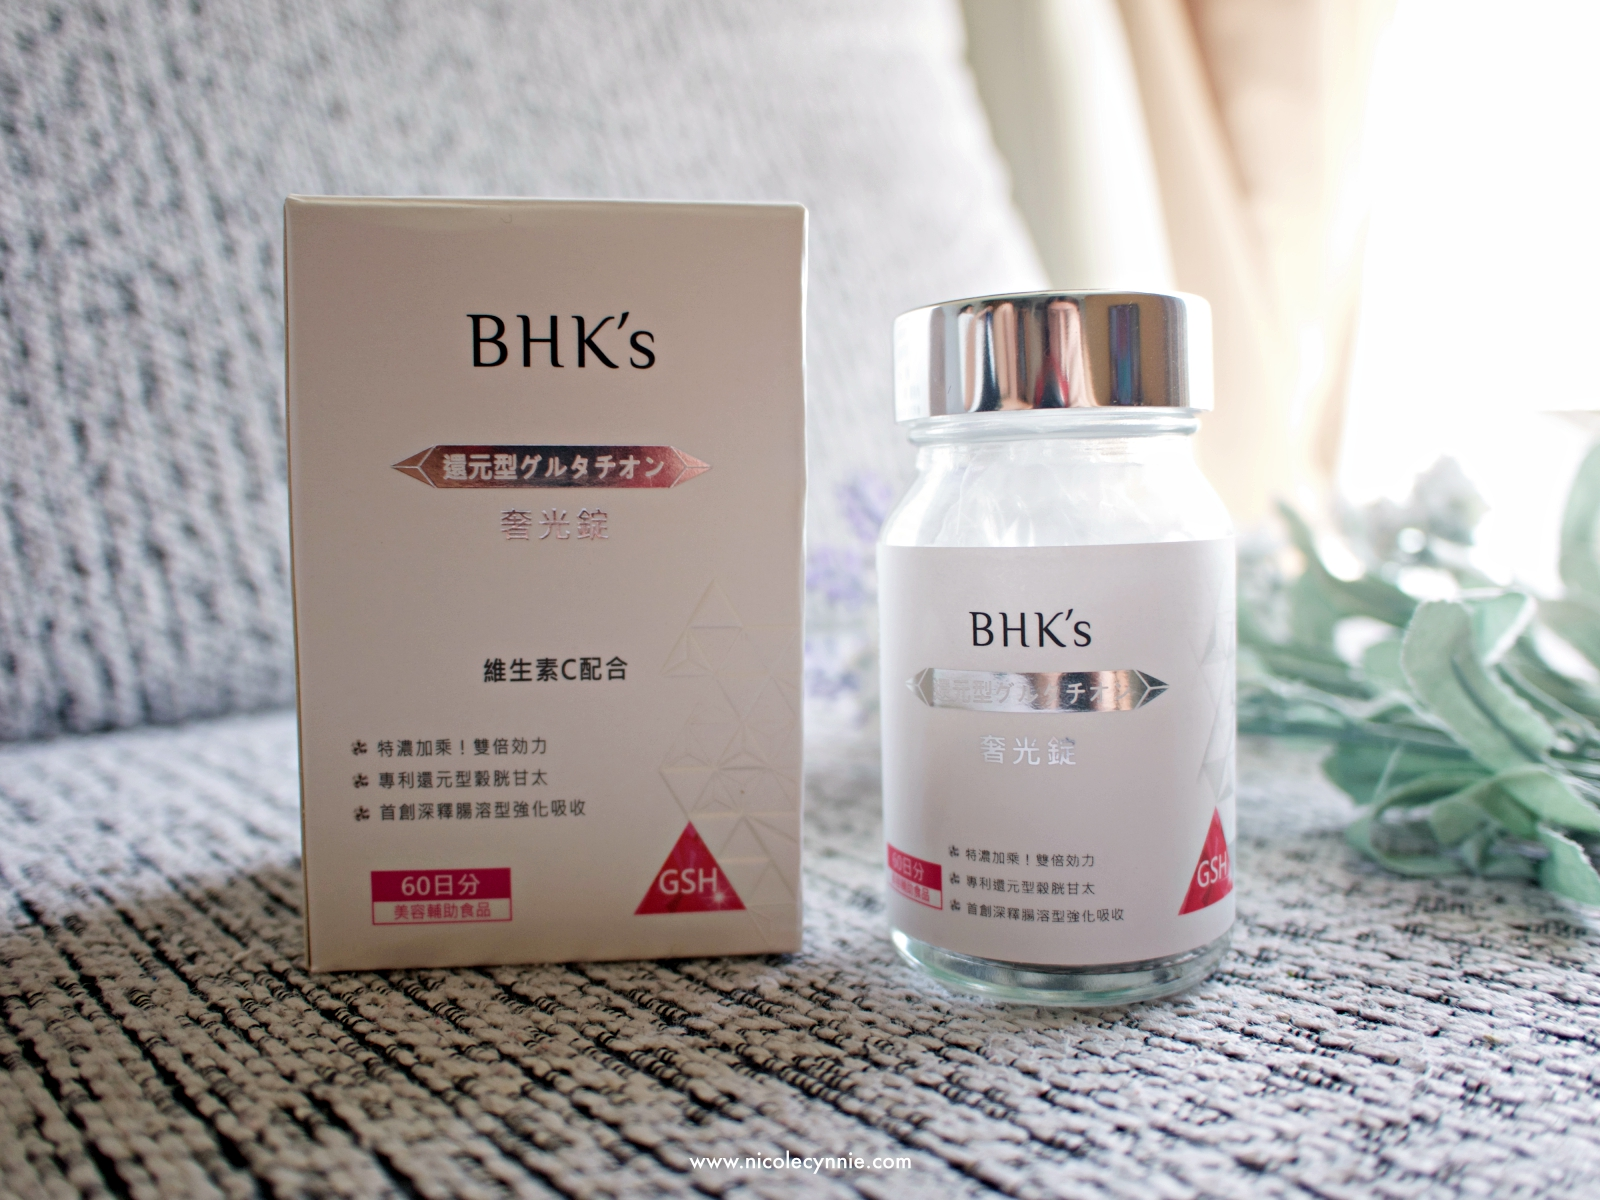 Nicole Cynnie | BHK's Glutathione Review 6